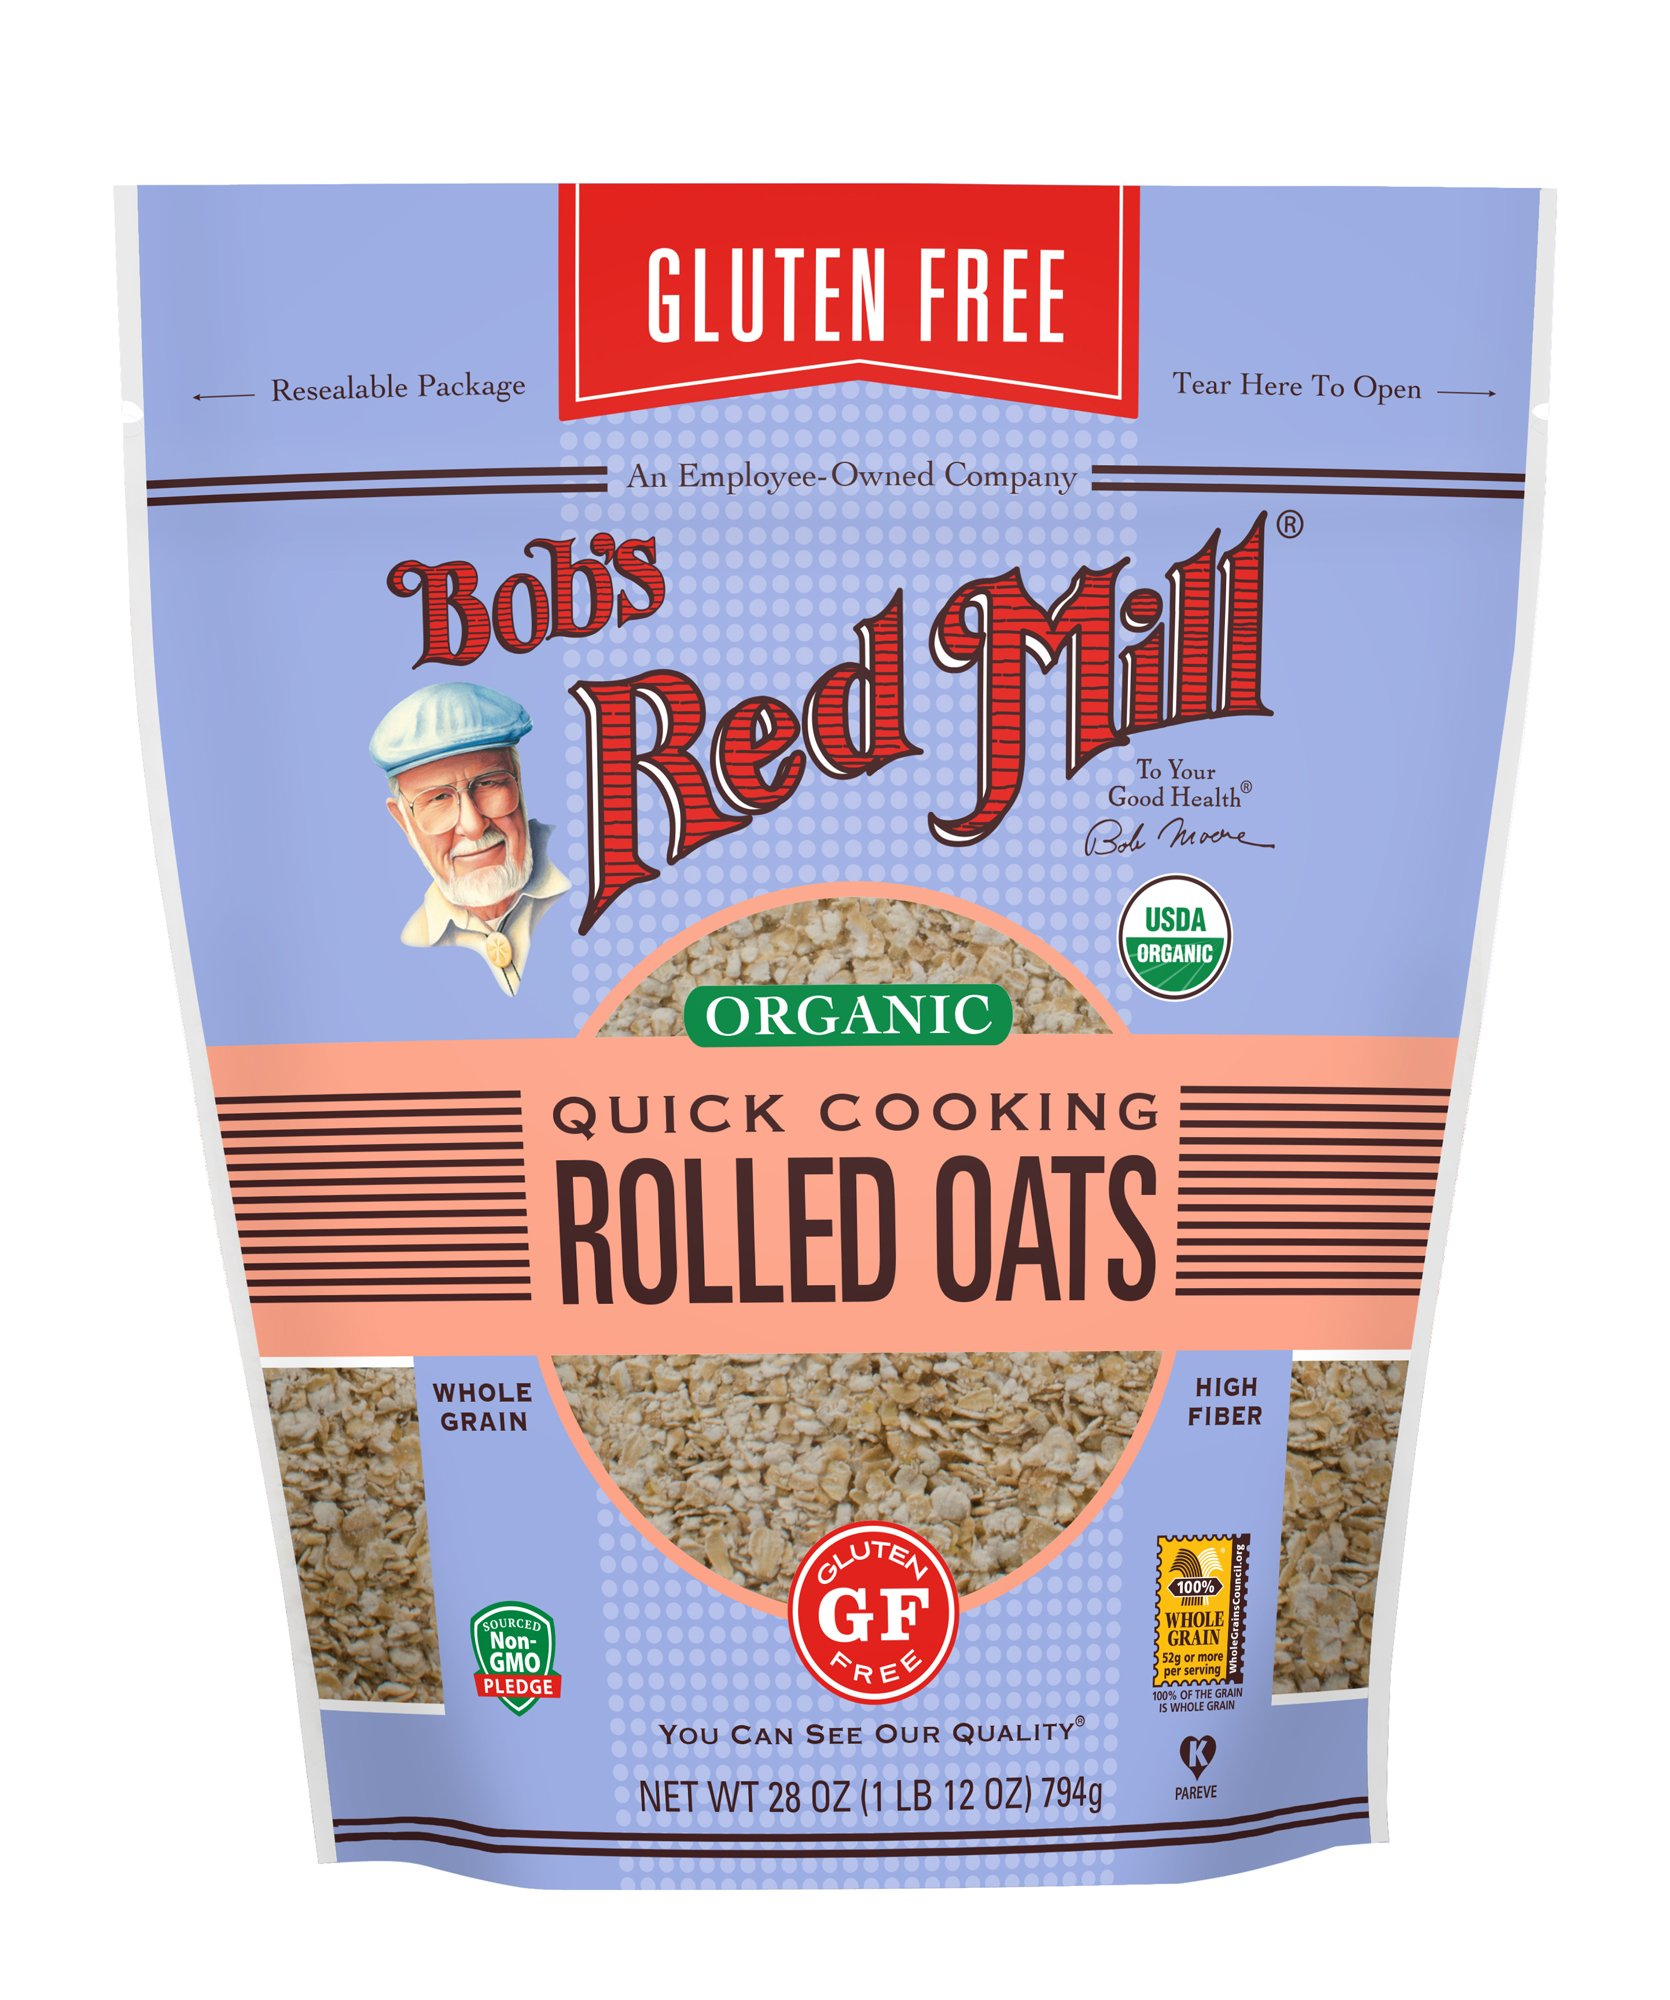 Bob's Red Mill (Resealable) Gluten Free Organic Quick Cooking Oats, 28-ounce (Pack of 4) by Bob's Red Mill (Image #2)